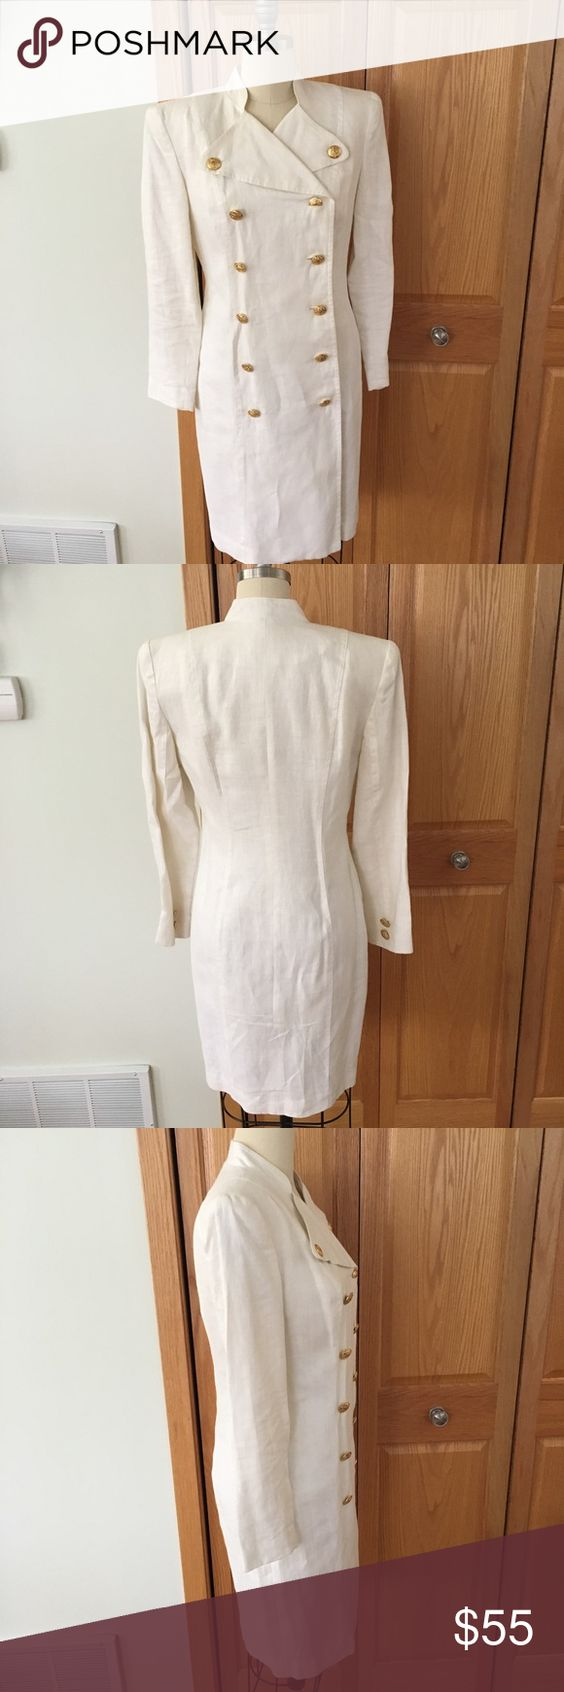 Robert Riel of NY for Neiman Marcus coat dress👗 100% linen white coat dress - double breasted for Neiman Marcus Robert Riel for Neiman Marcus Dresses